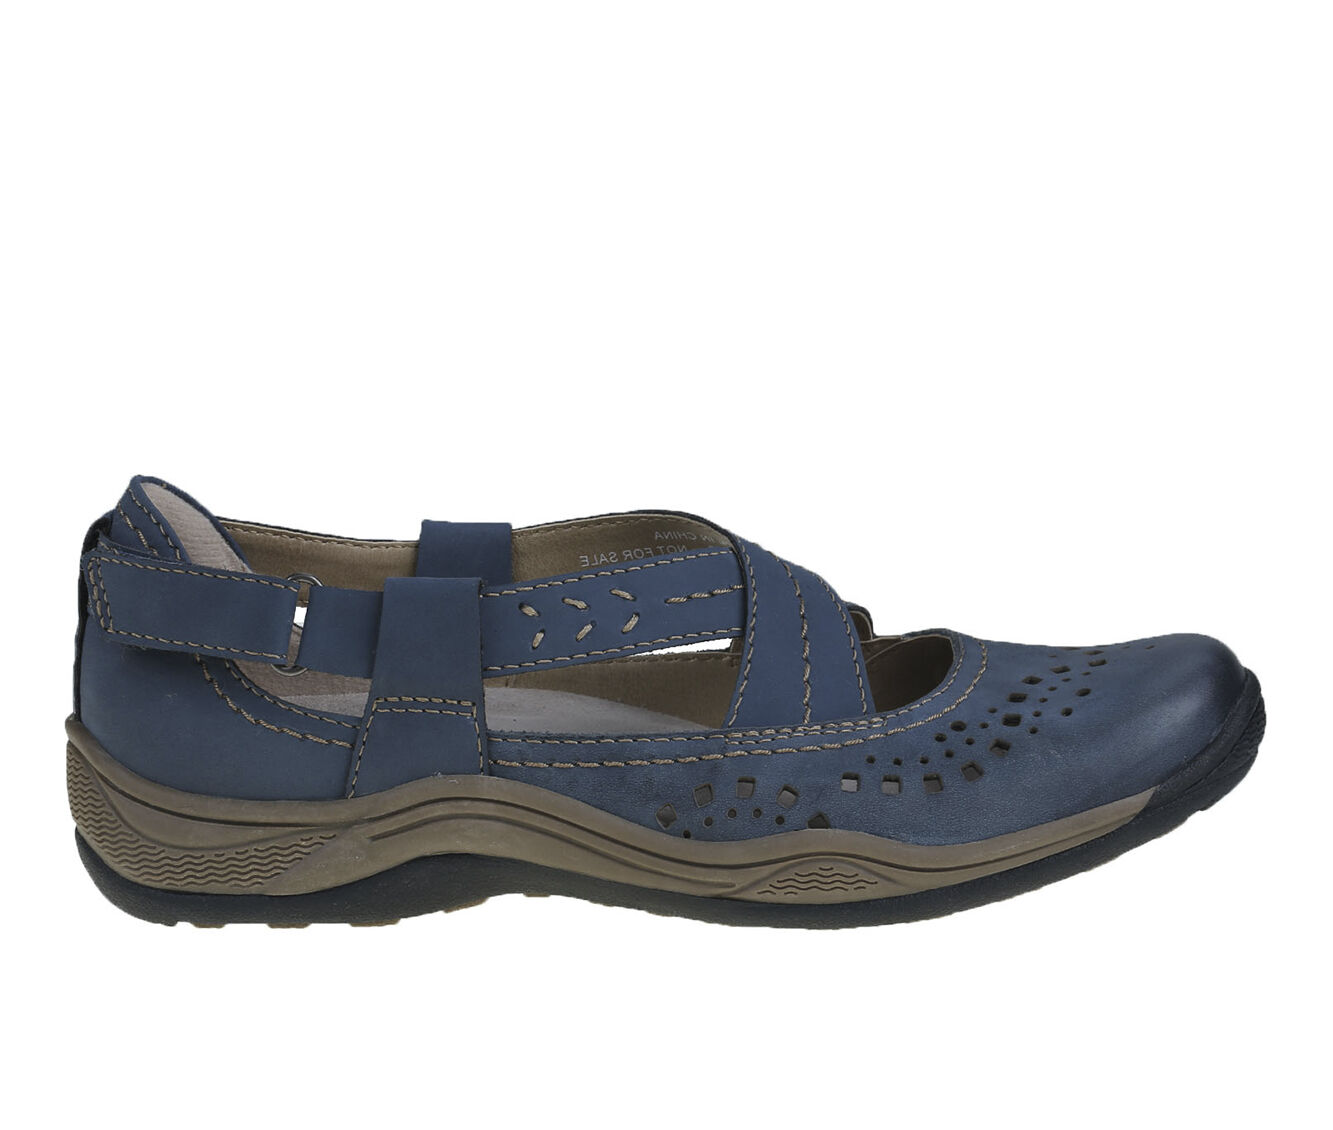 Women's Earth Origins Clara Casey Moroccan Blue